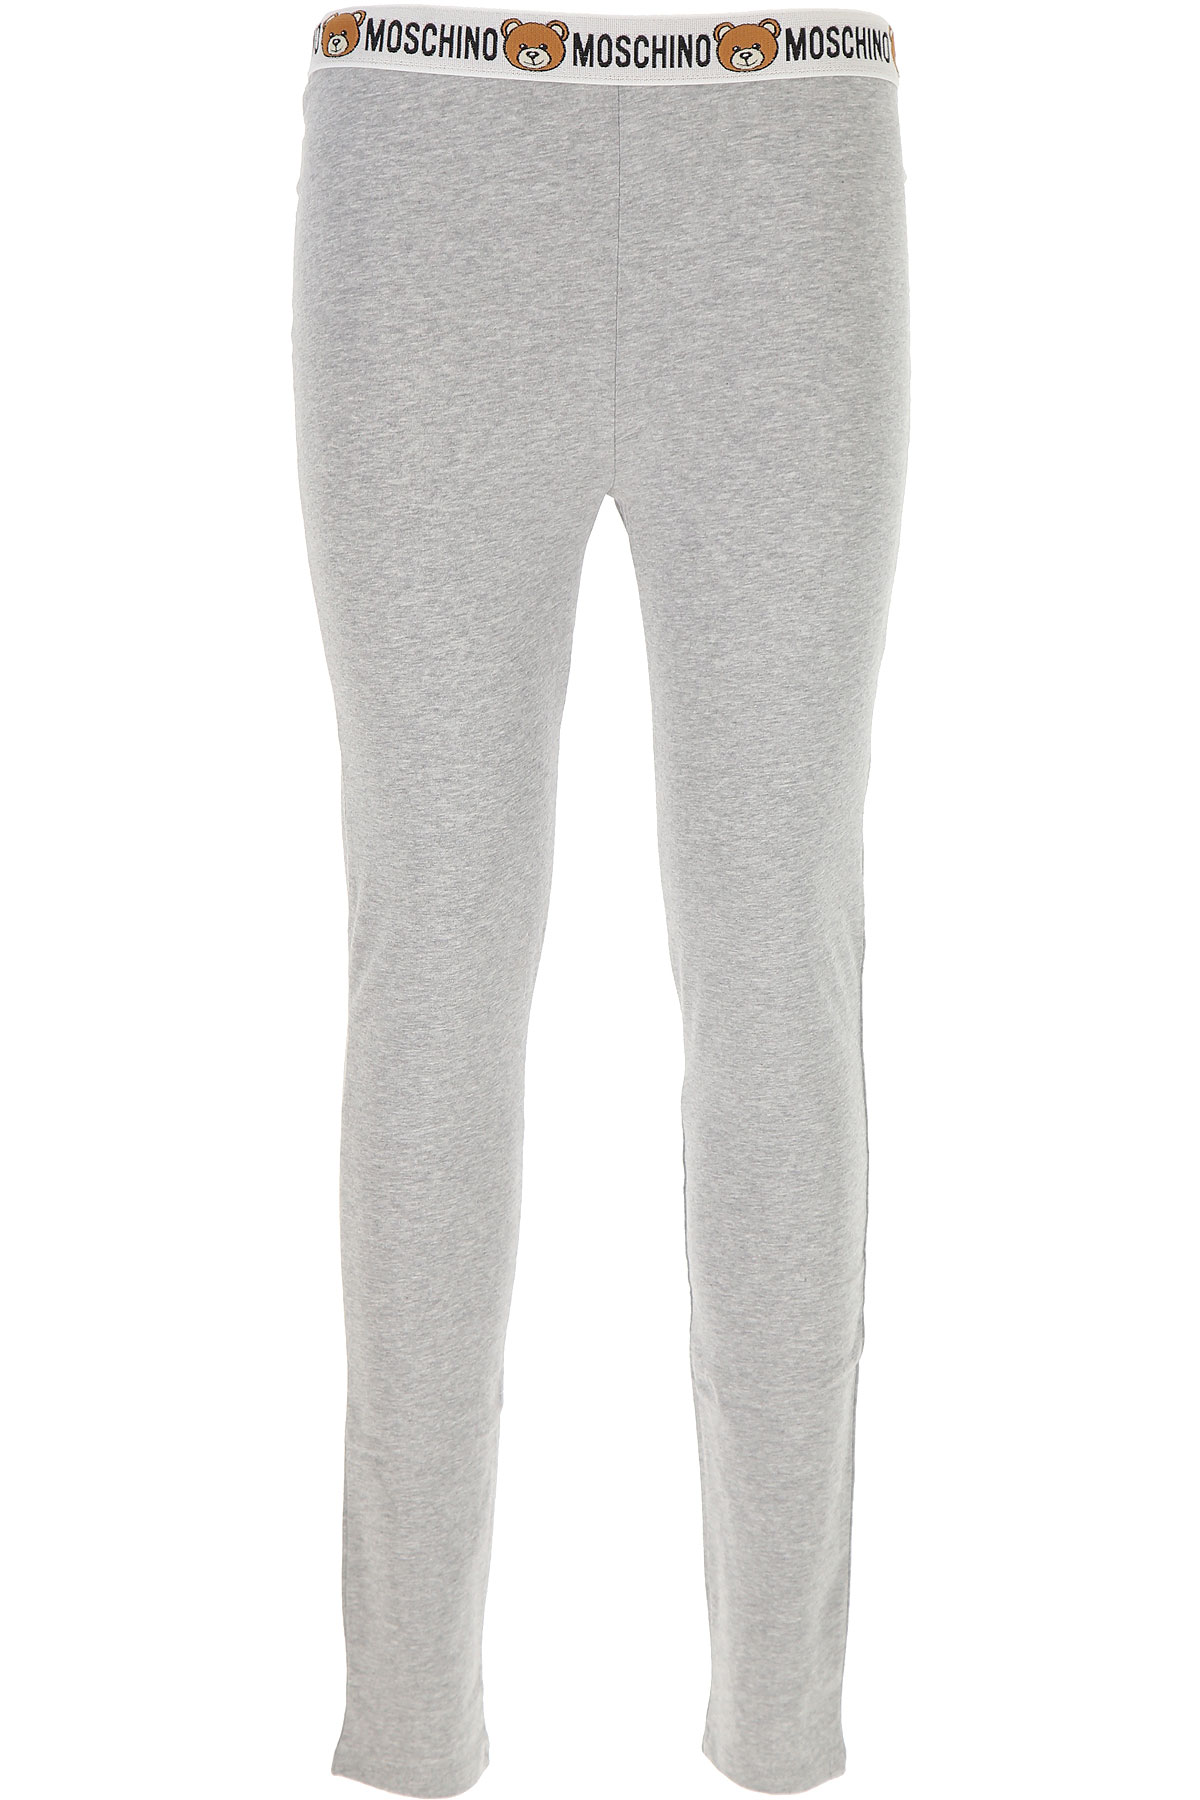 Moschino Women's Sportswear for Gym Workouts and Running On Sale in Outlet, Melange Grey, Cotton, 2019, 6 8